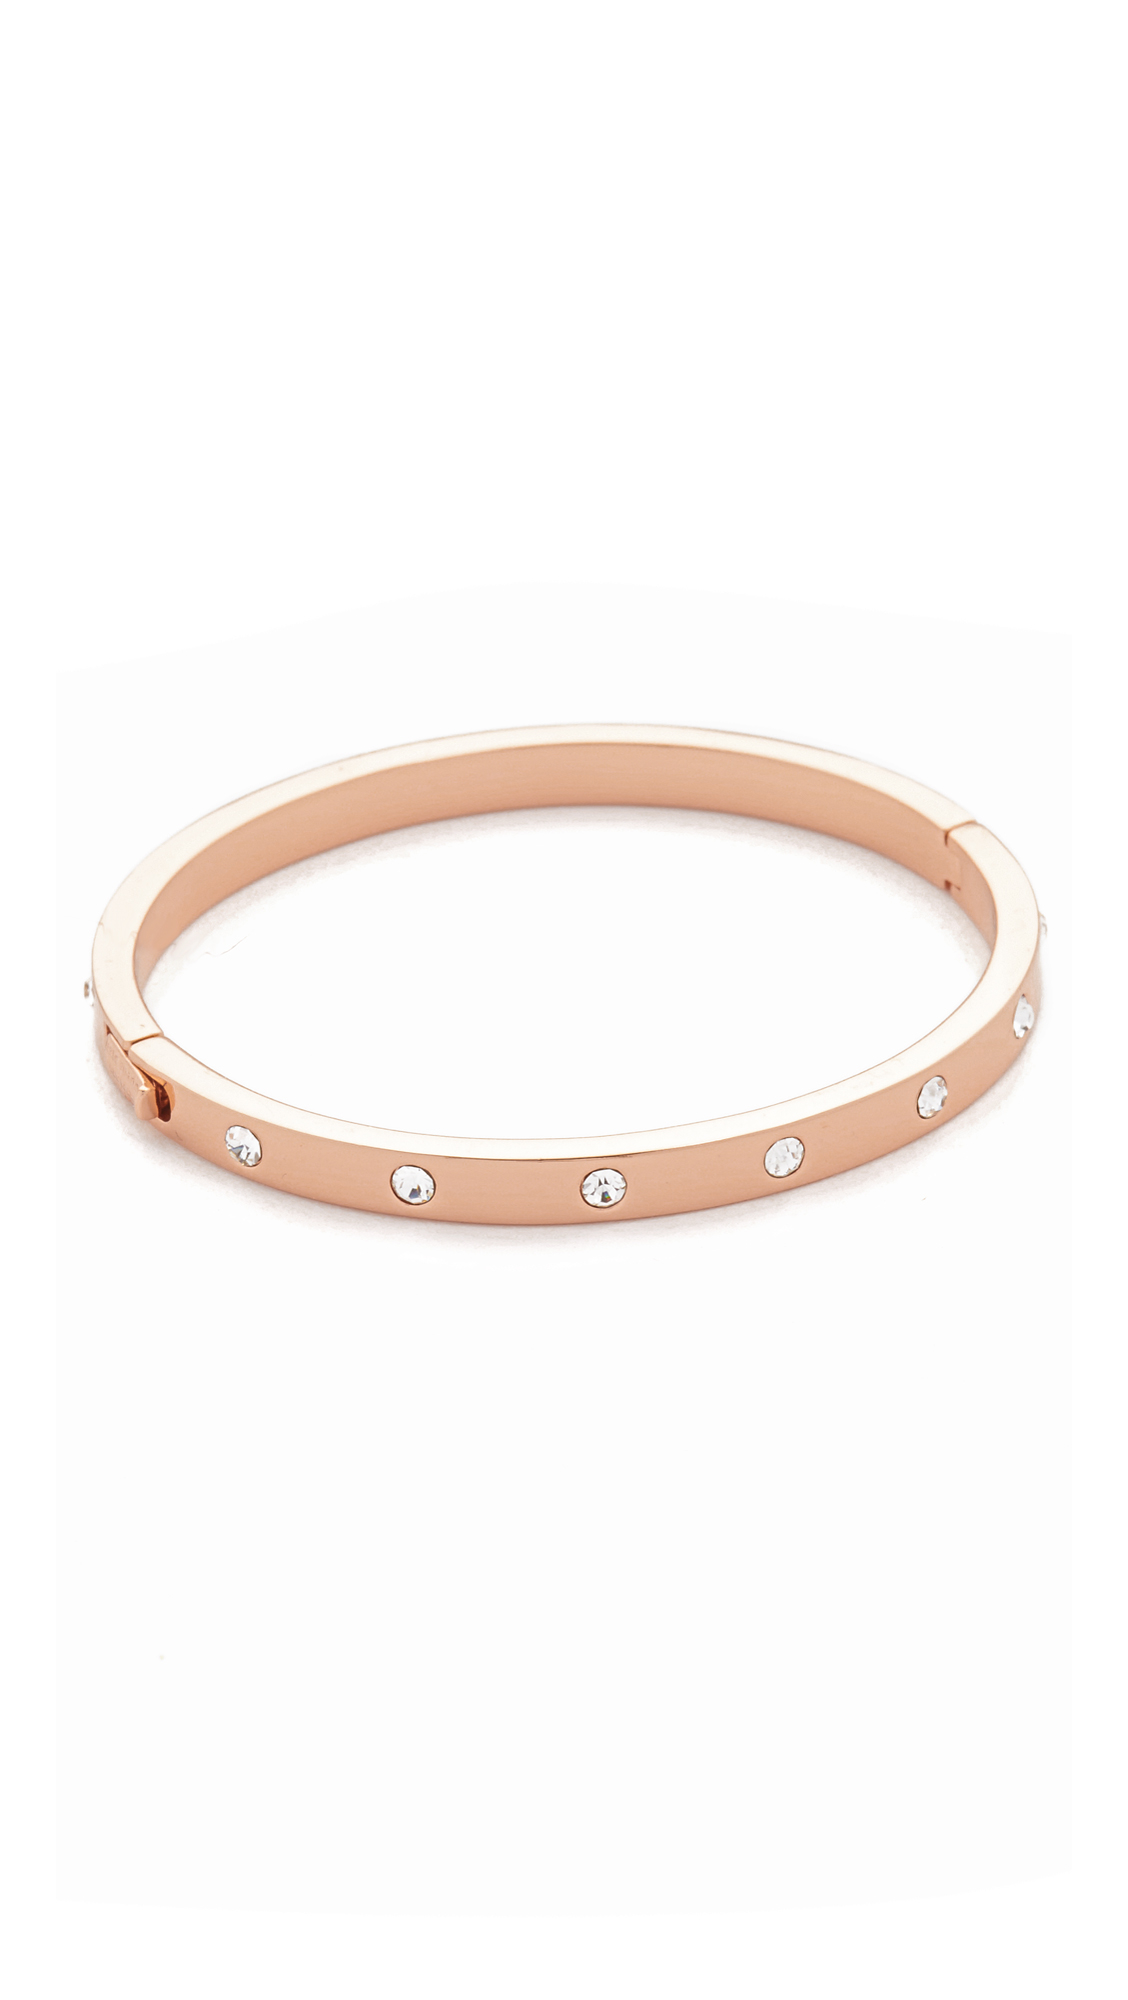 Kate Spade Set In Stone Hinged Bangle In Gold Clear Rose